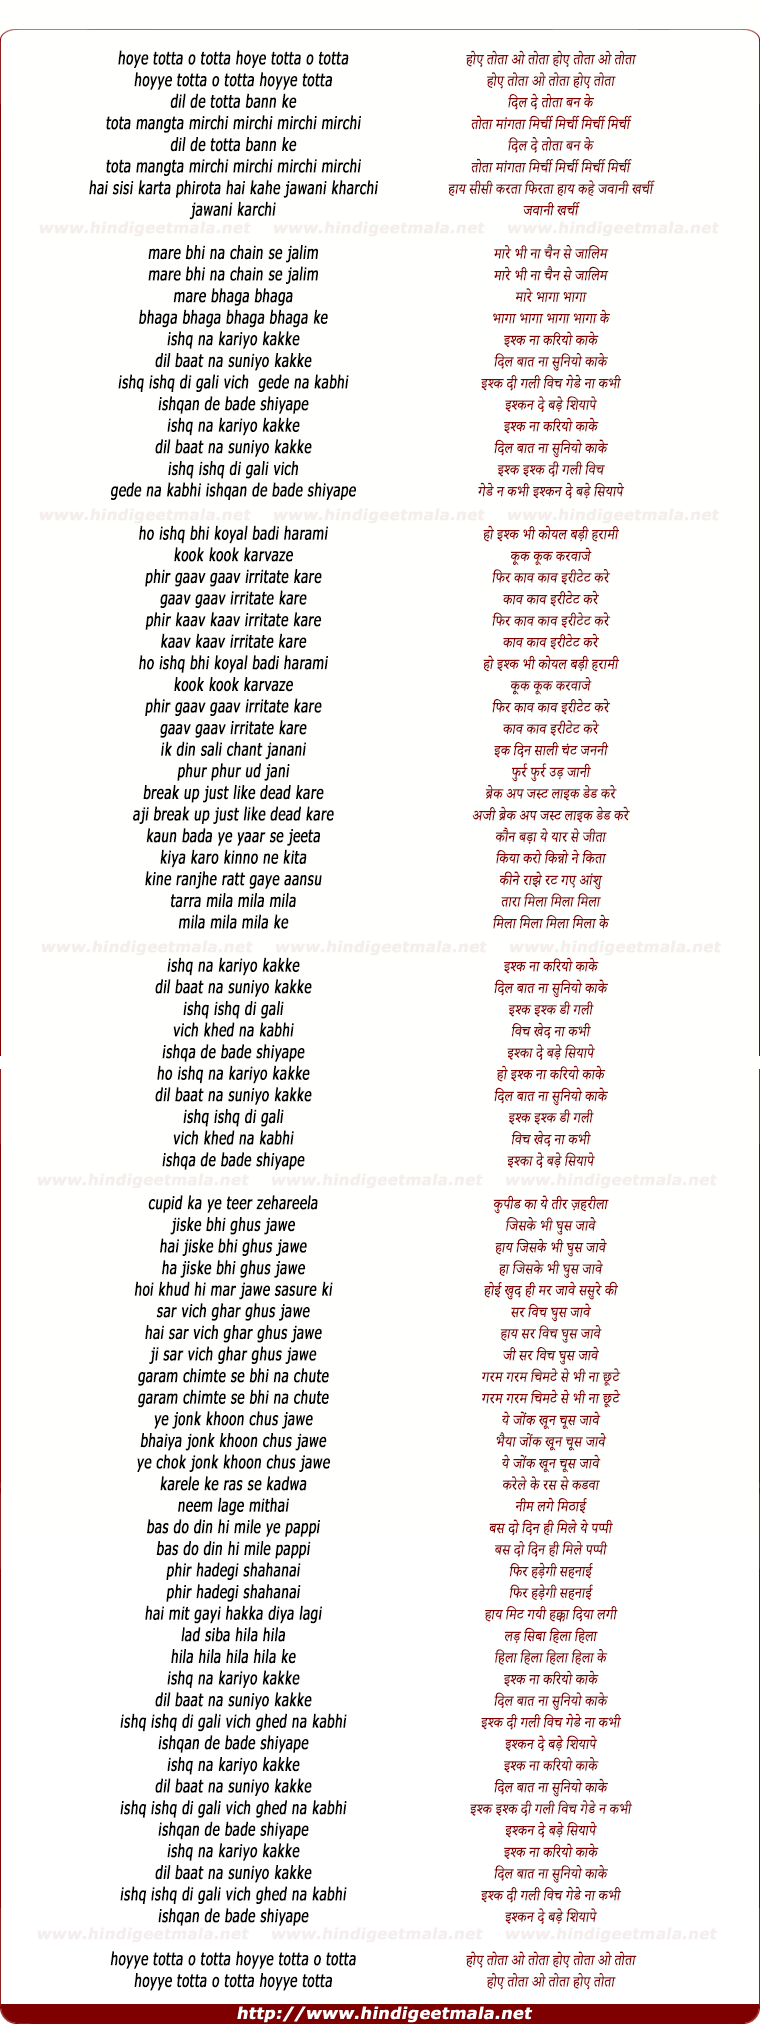 lyrics of song Ishq Naa Kariyo Kakke